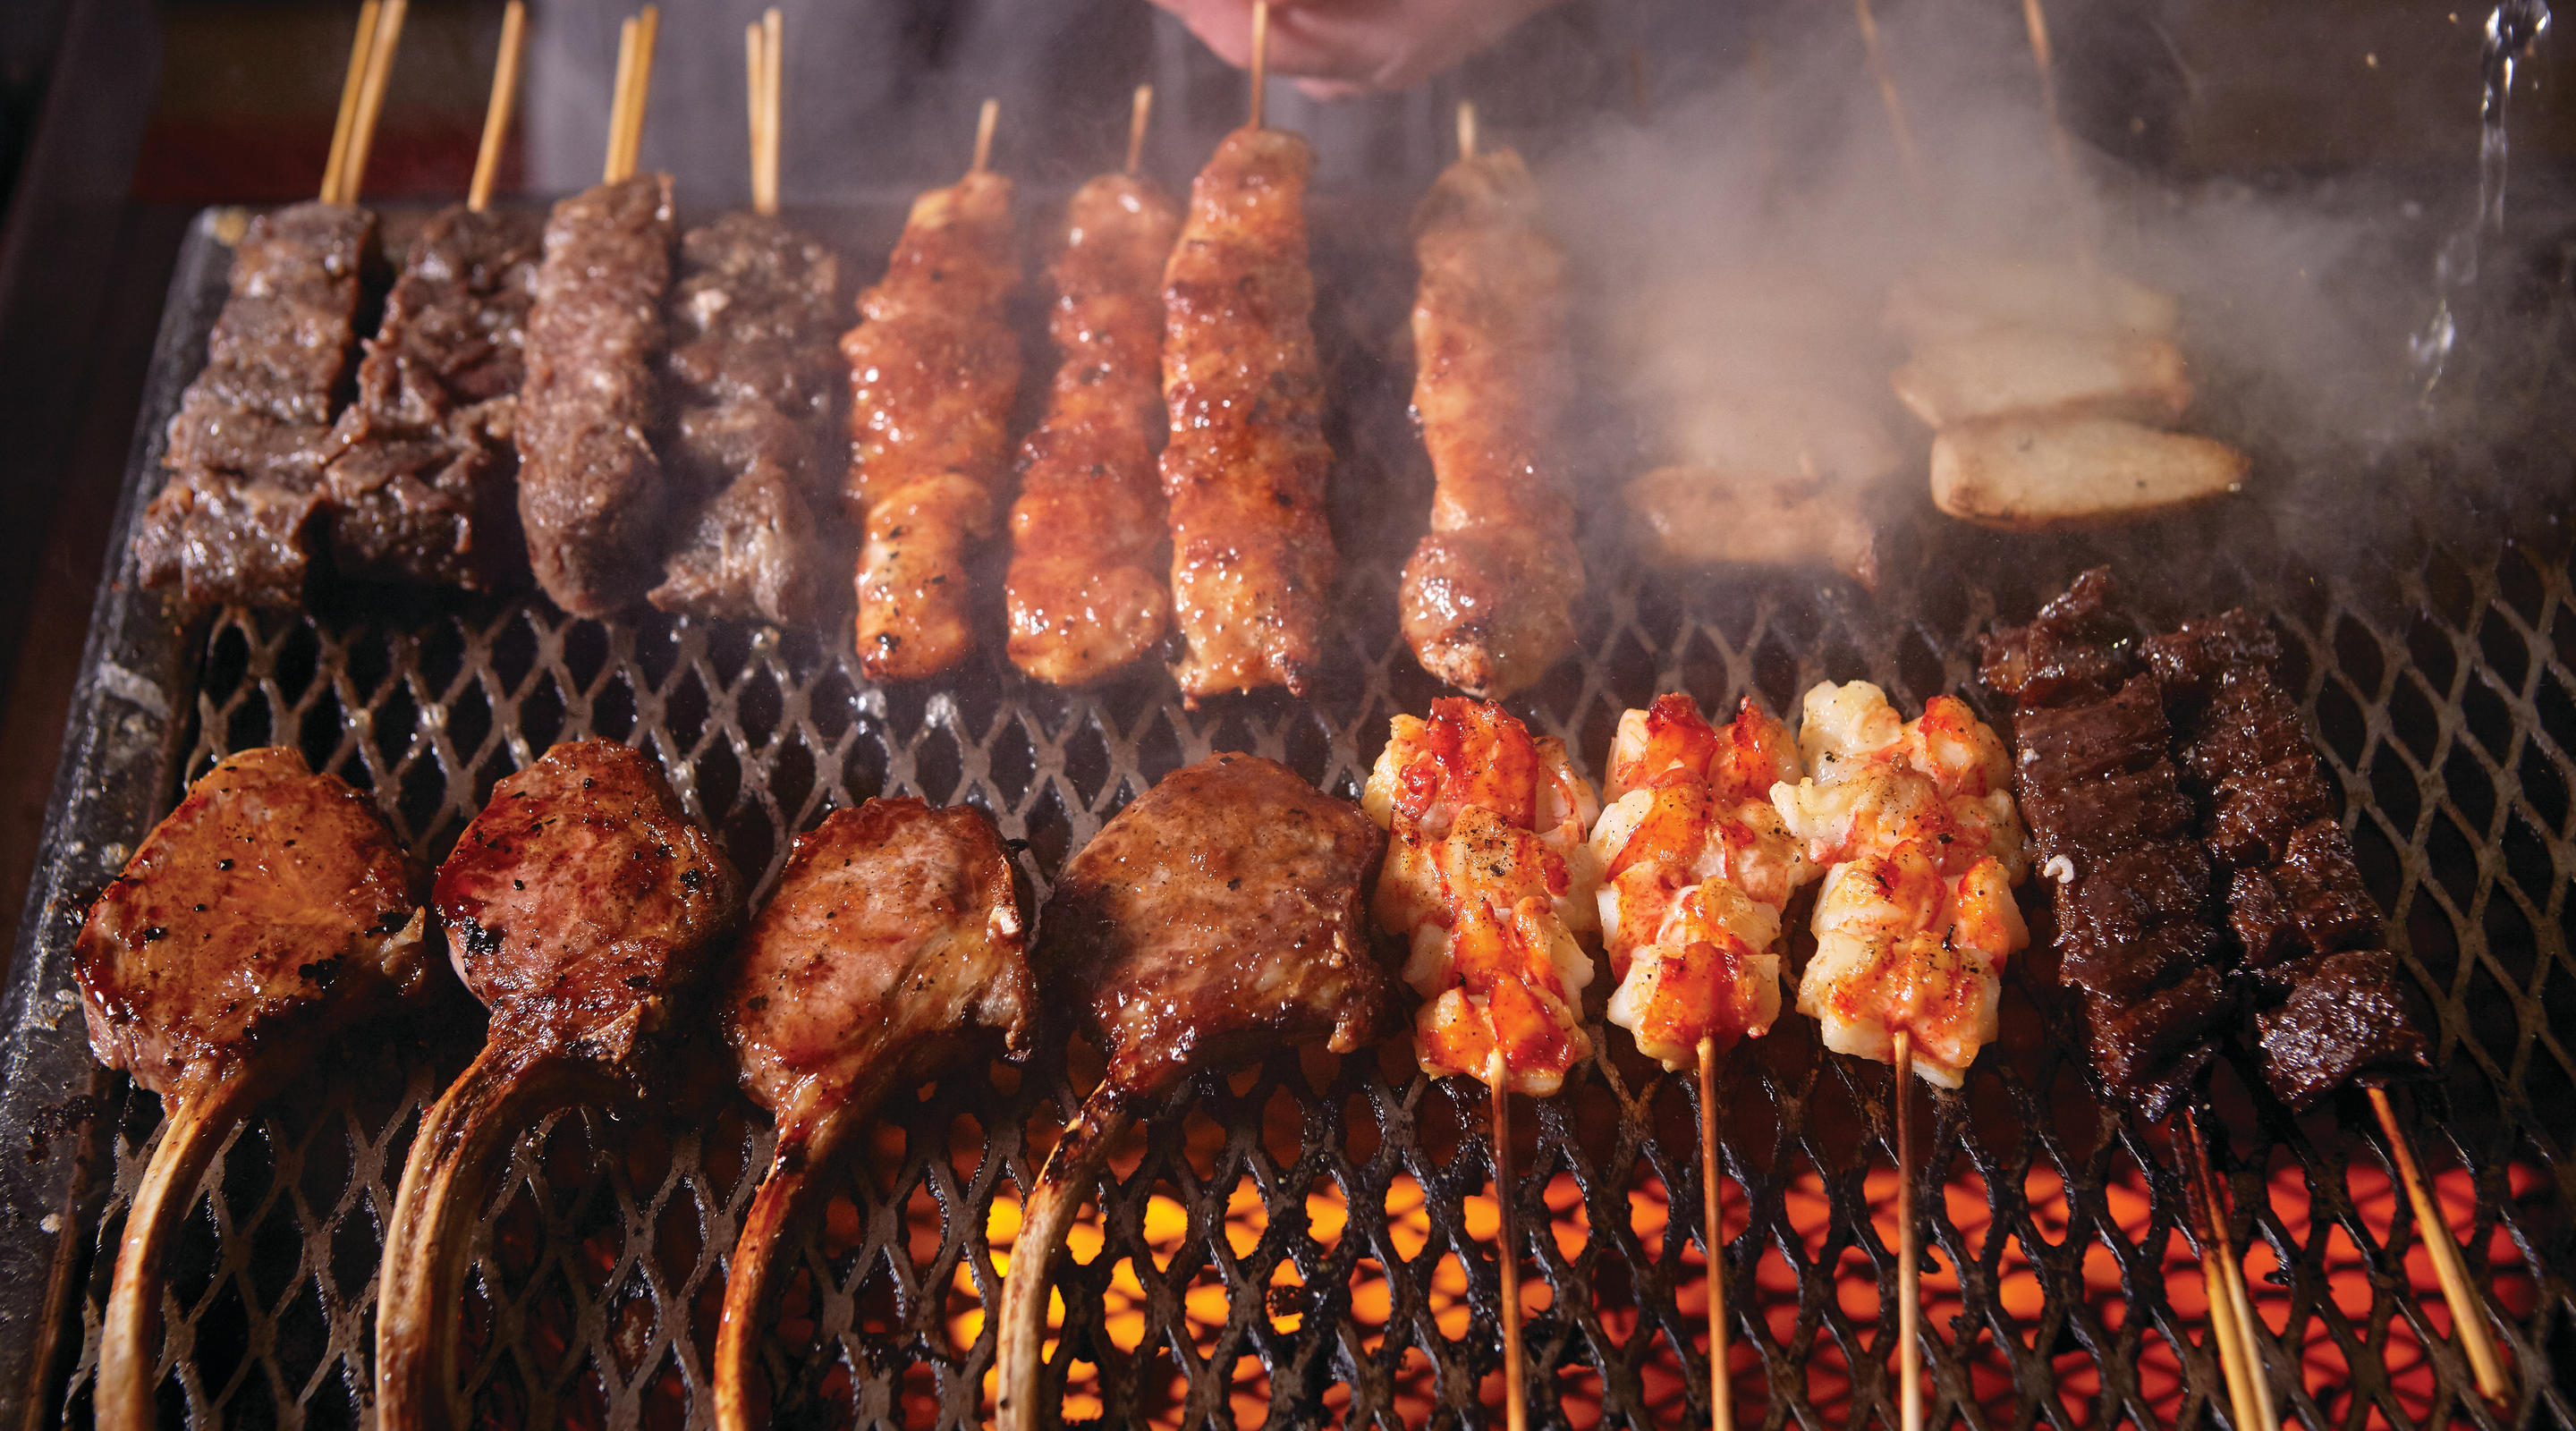 Japanese style barbecued meats being cooked.